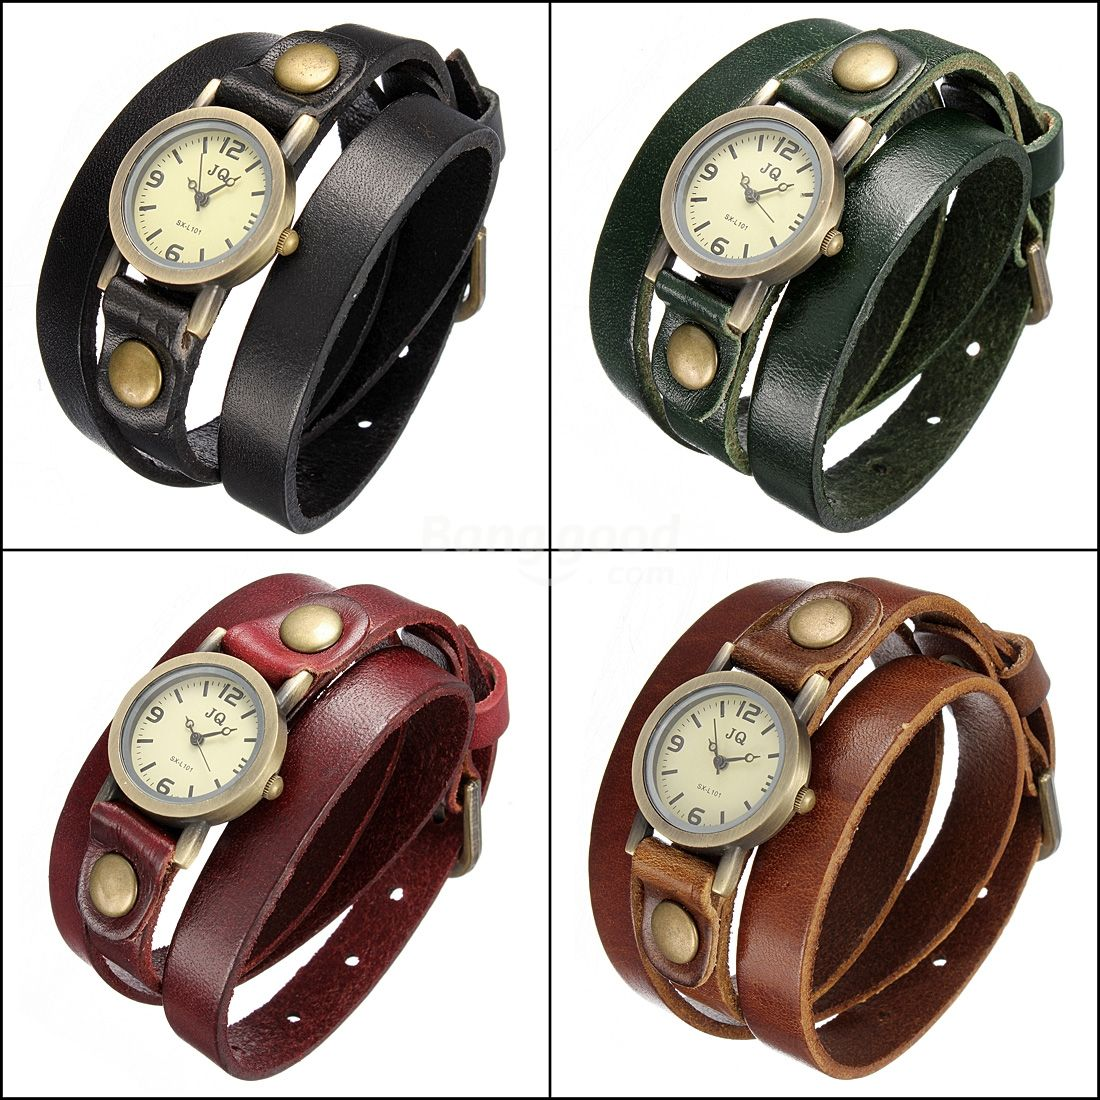 Fashion Retro Leather Band Wound Casual Style Quartz Watch 4 Colors Free Shipping!  - US$4.99